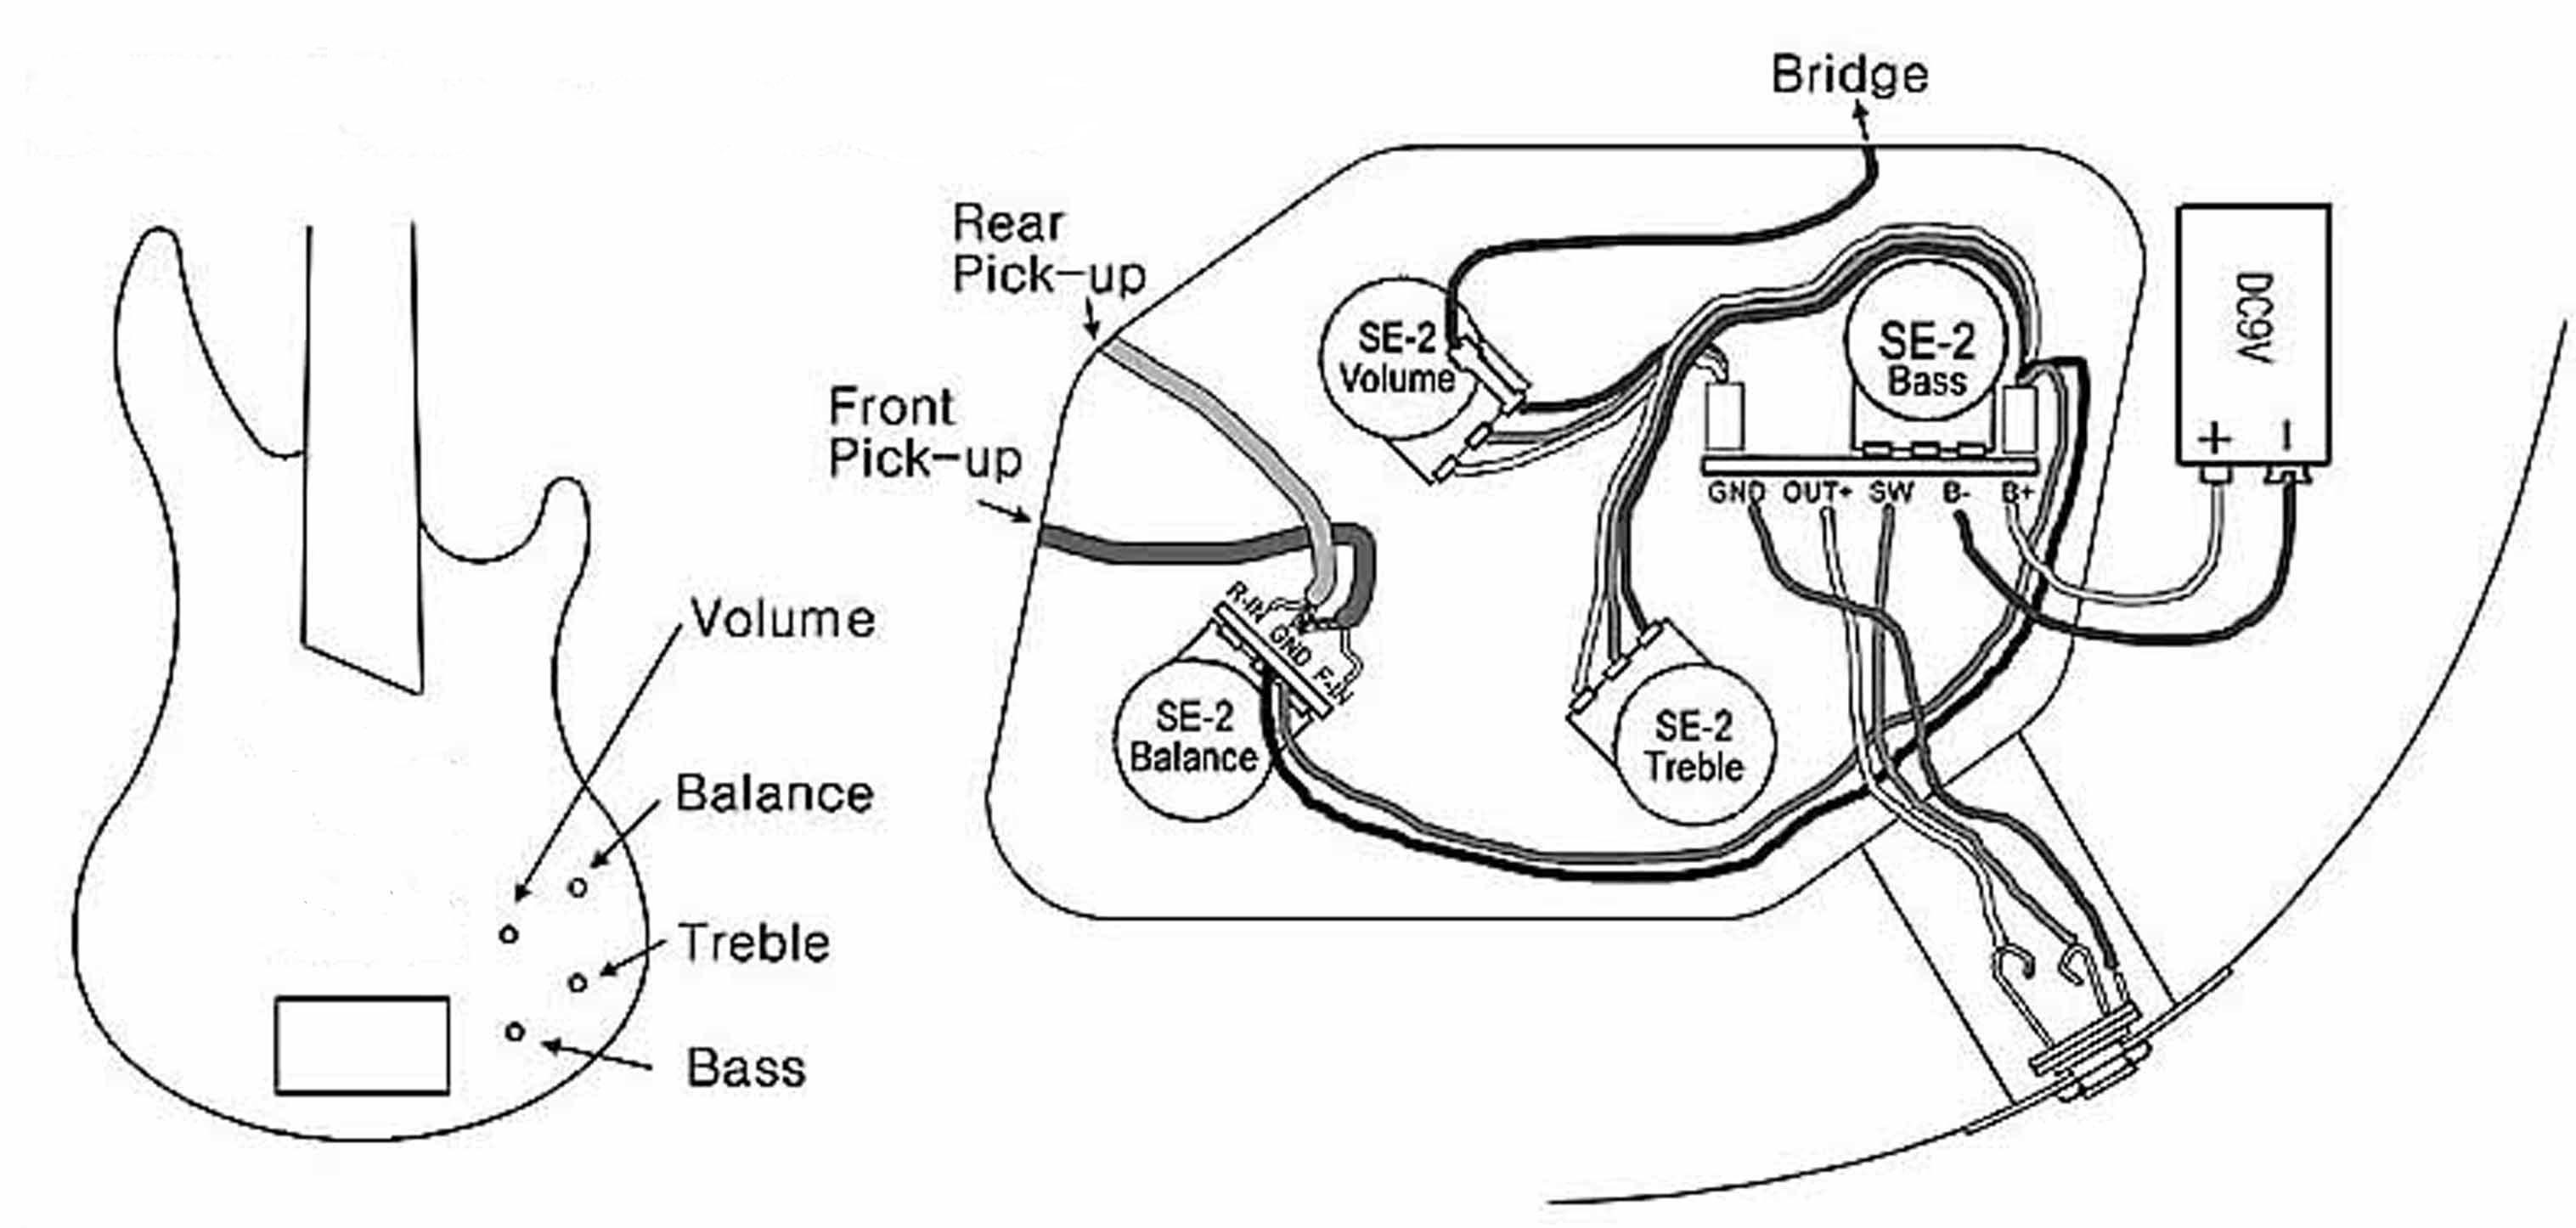 WOBWiring douglas wob 826 white left handed rondomusic com left handed guitar wiring diagram at bayanpartner.co